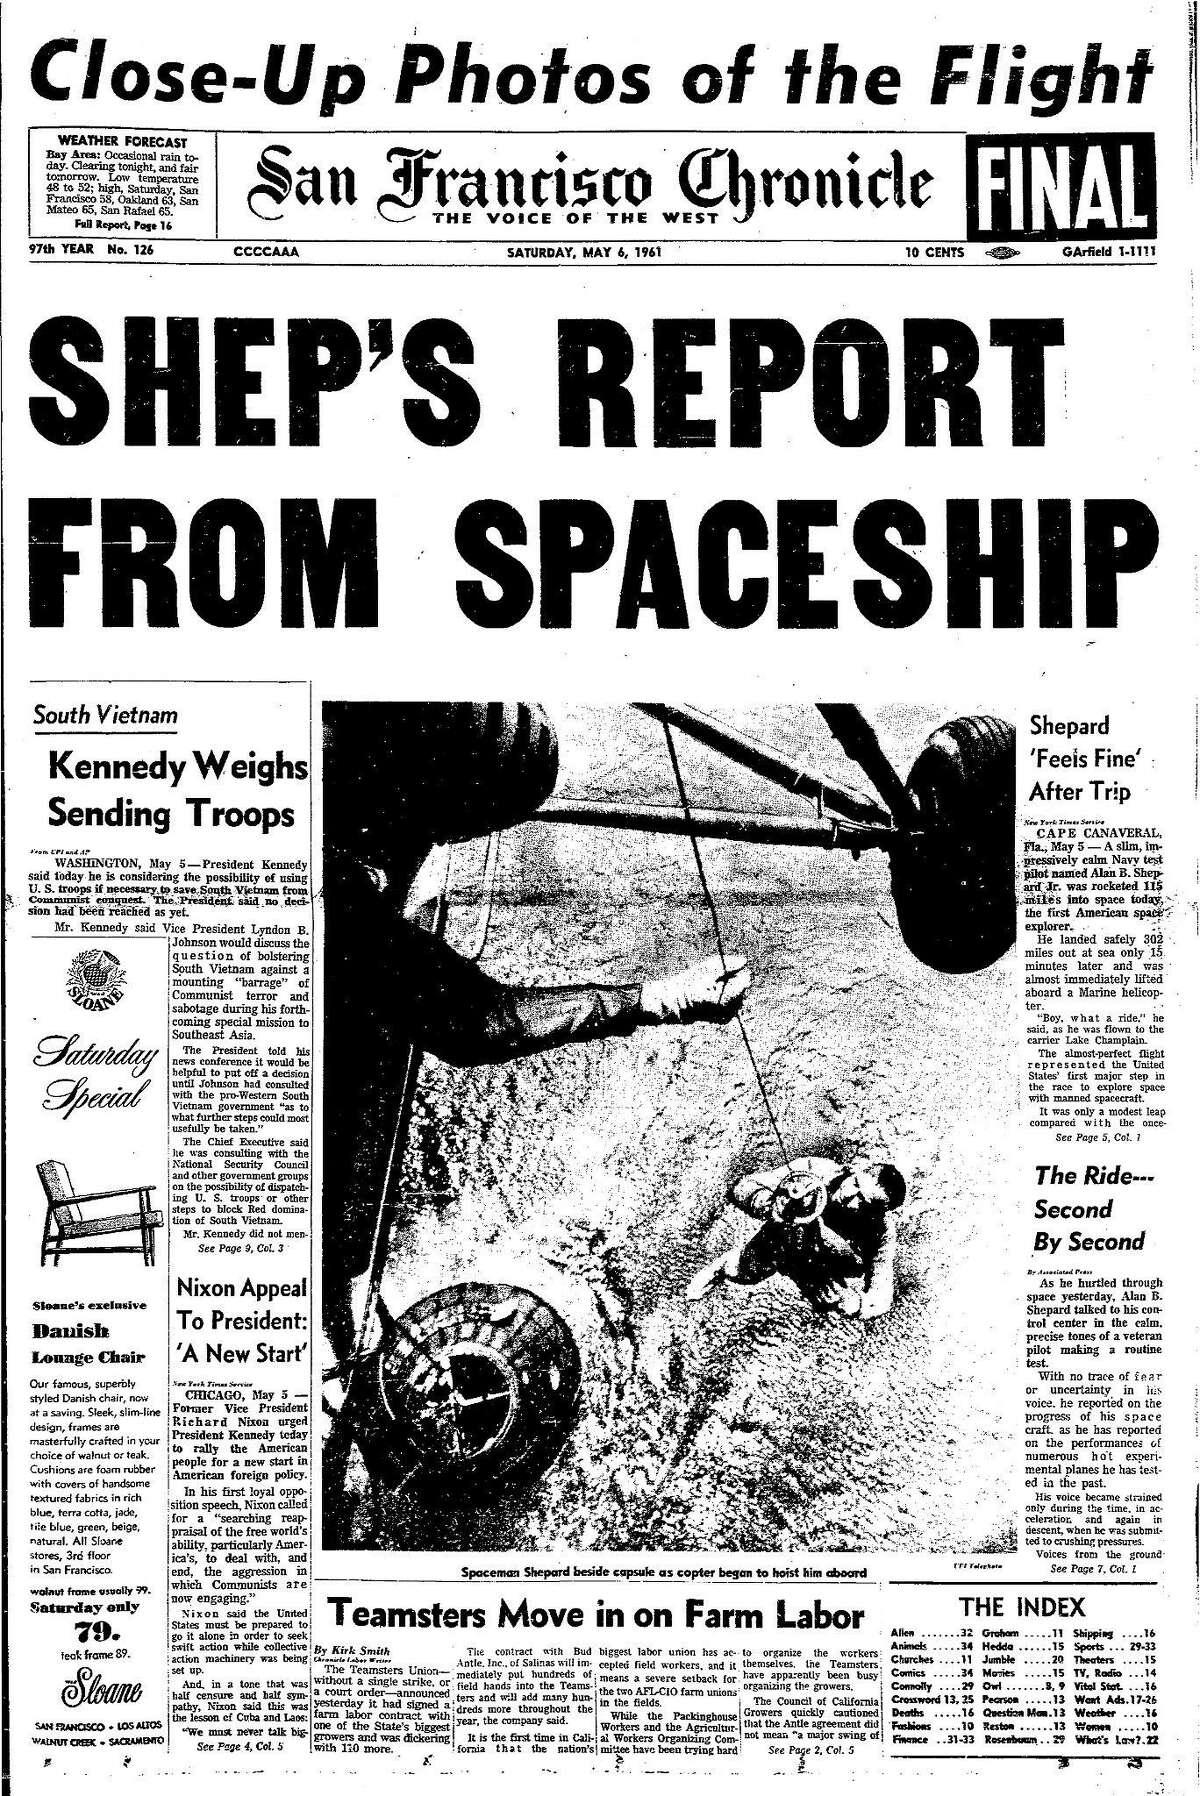 Historic Chronicle Front Page May 6, 1961 Alan Shepard returns from space Chron365, Chroncover